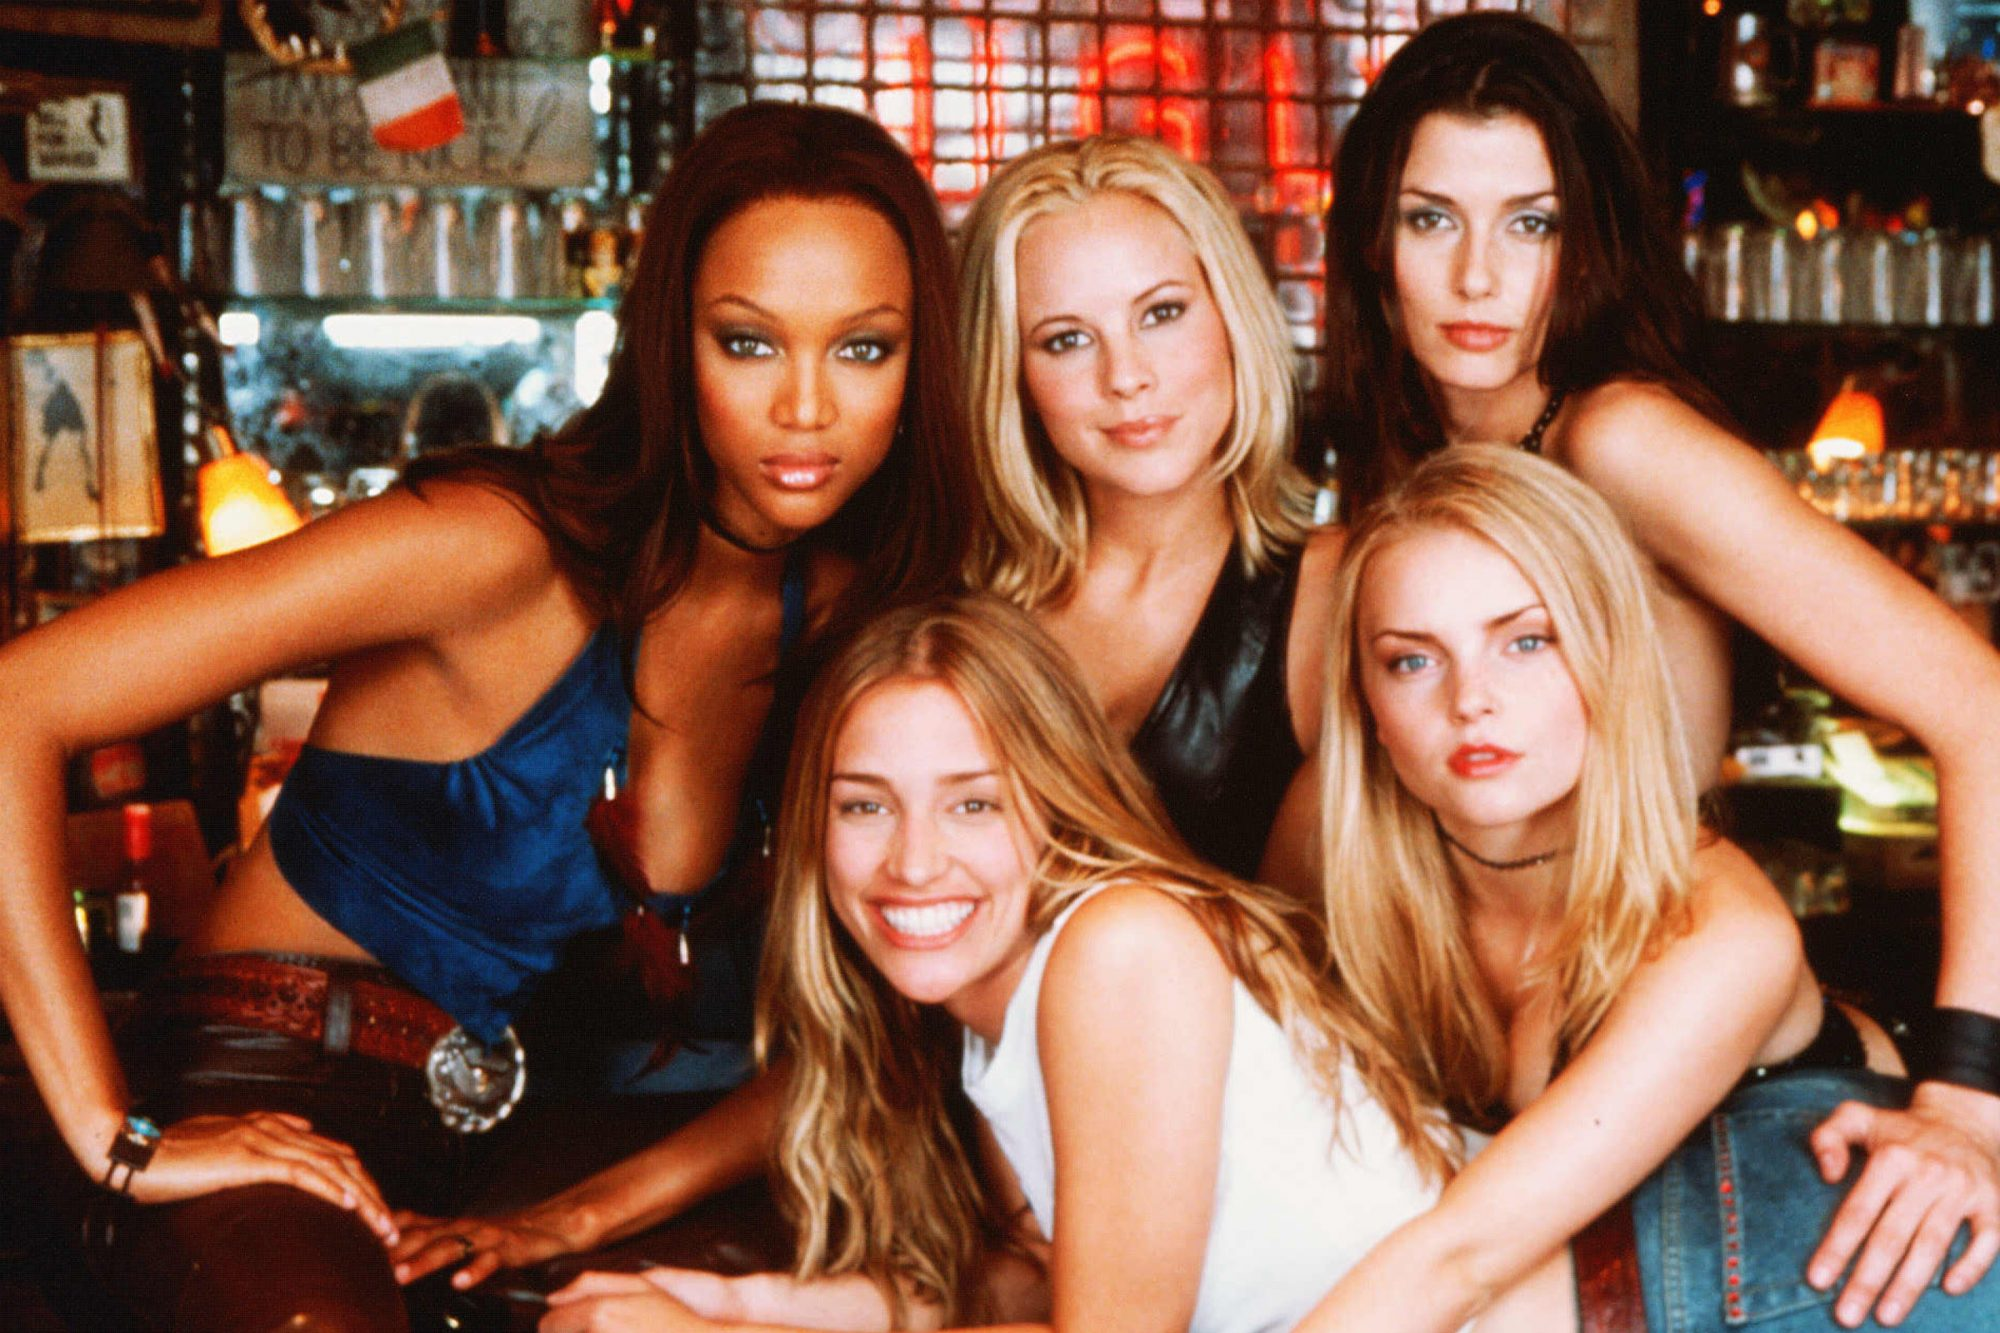 Coyote Ugly Turns 20: Where Is the Cast Now?